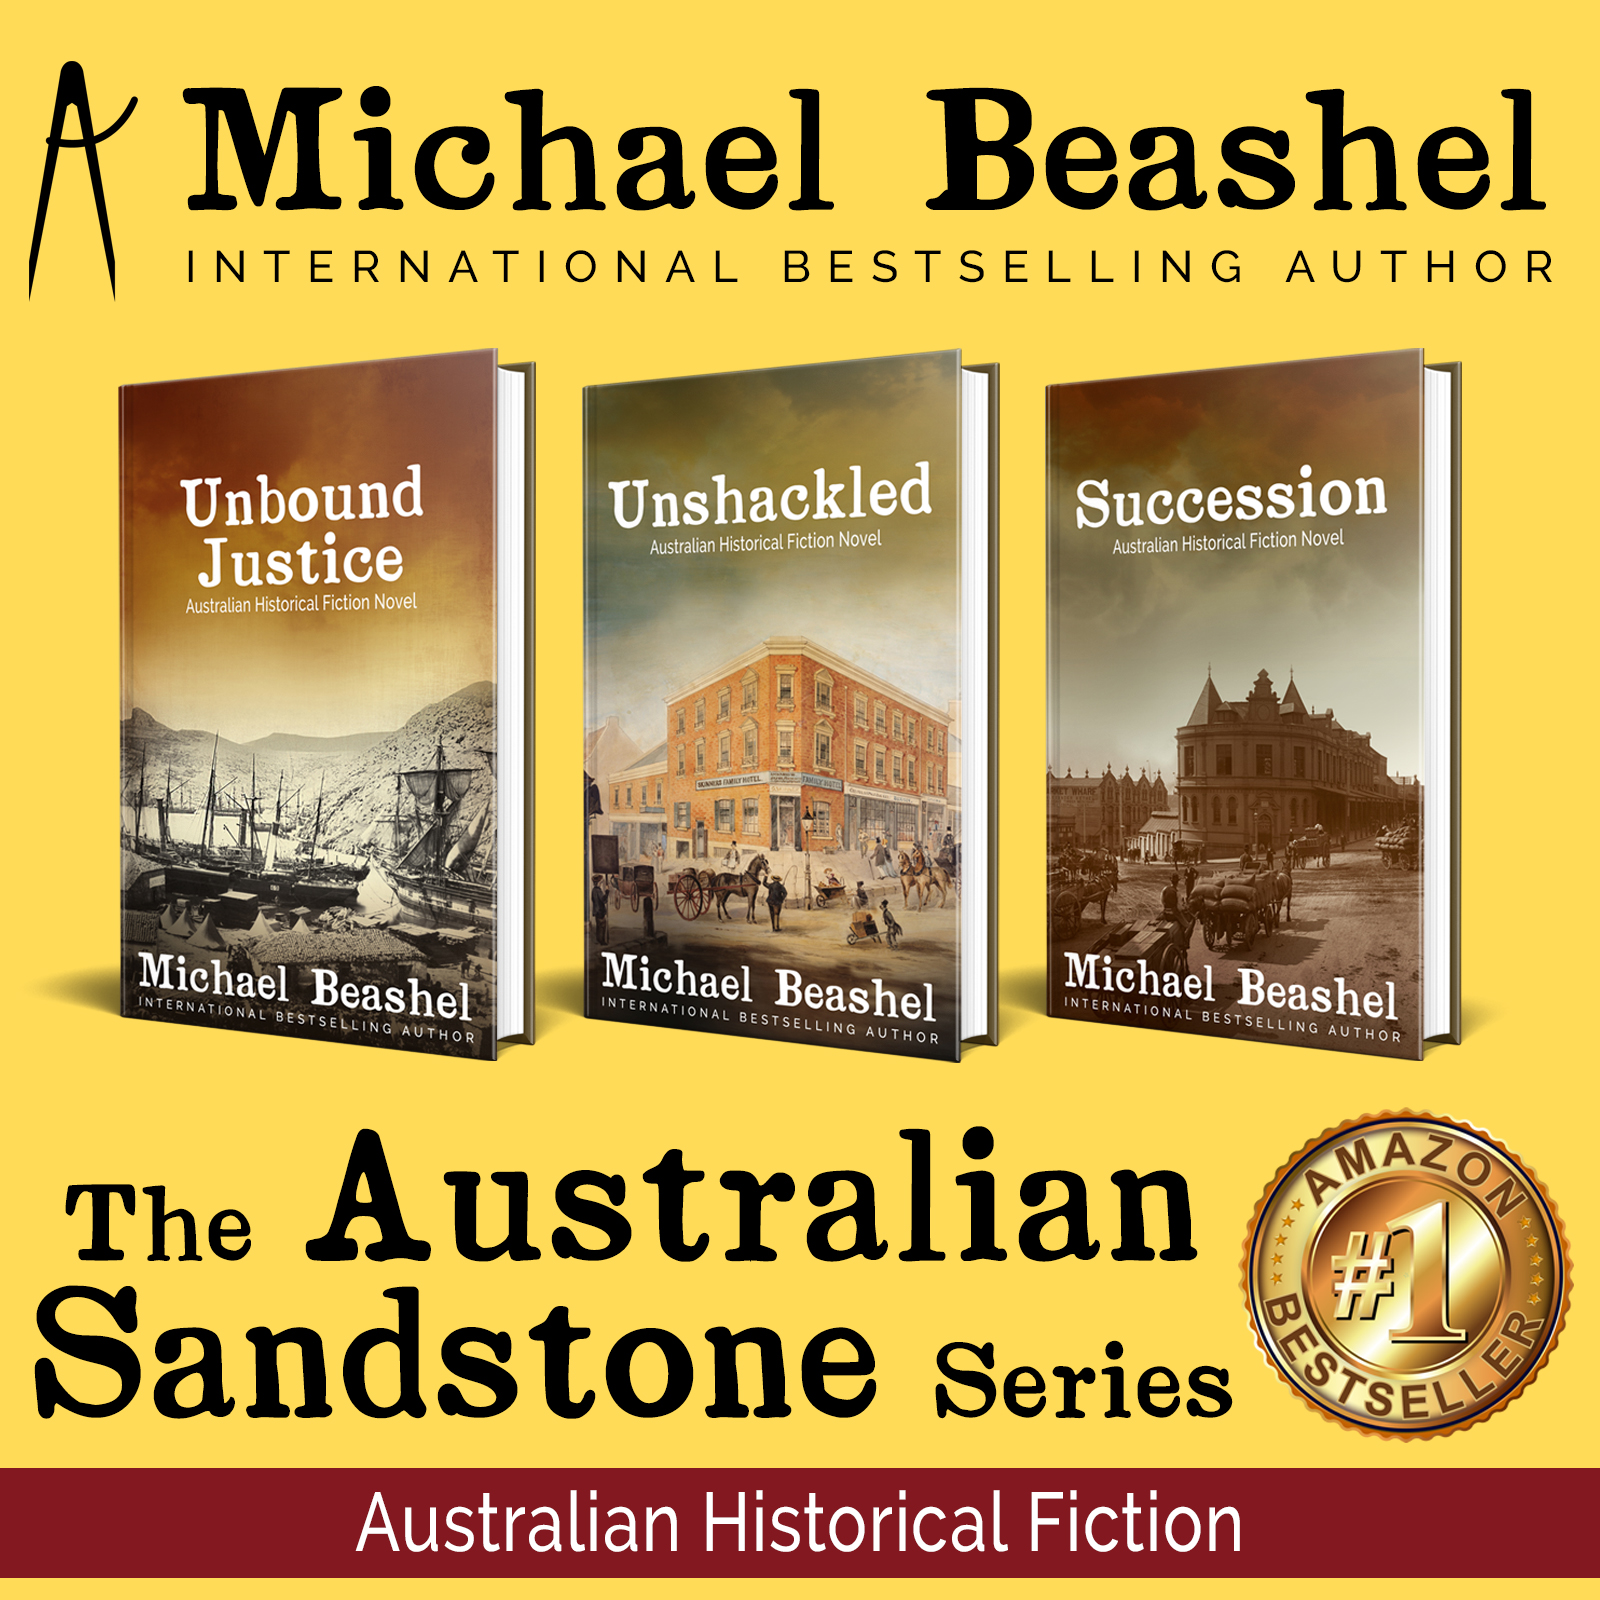 Michael Beashel, International Bestselling Author. All the covers: Unbound Justice, Unshackled, and Succession. The Australian Sandstone Series, Amazon #1 Bestseller. Australian Historical Fiction.  No one ever listens to the web designer when they say not to put a lot of text into an image